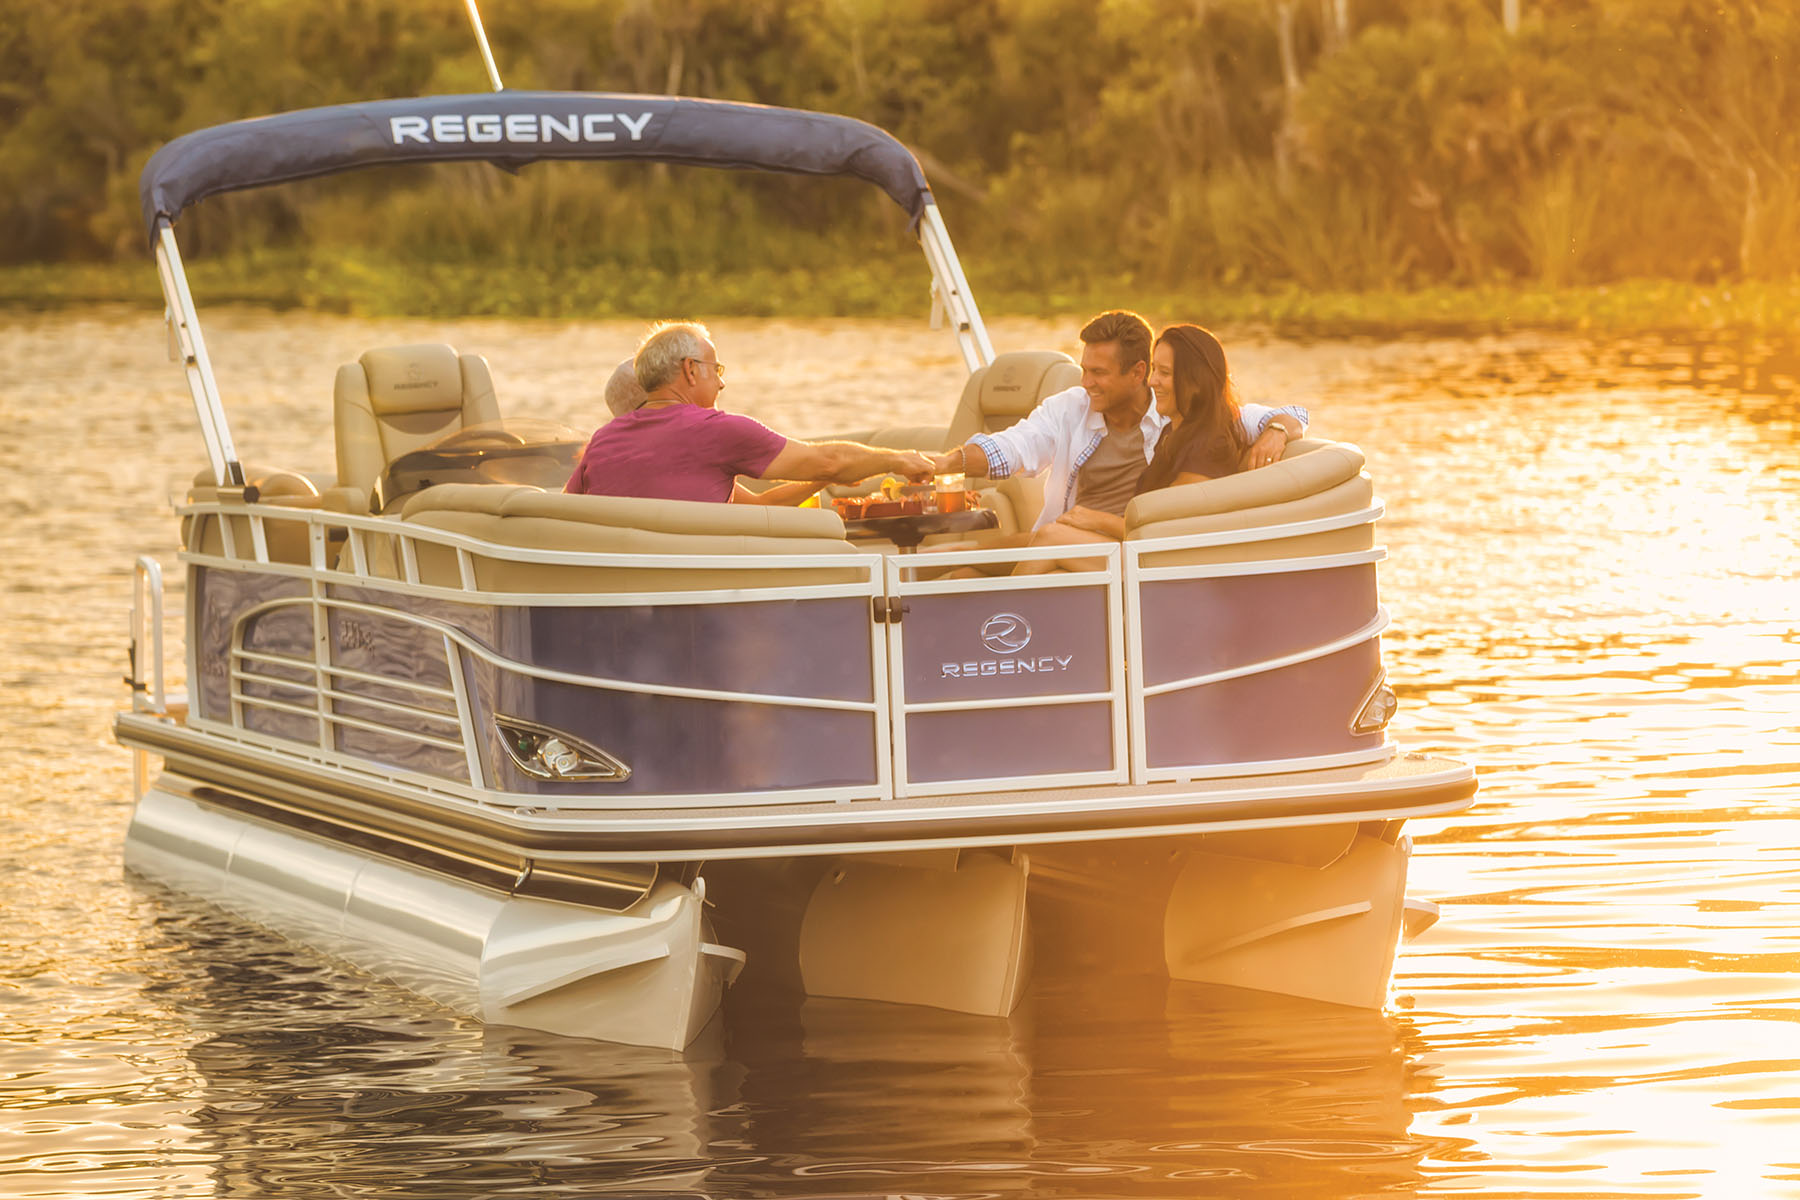 2019 regency pontoon boat